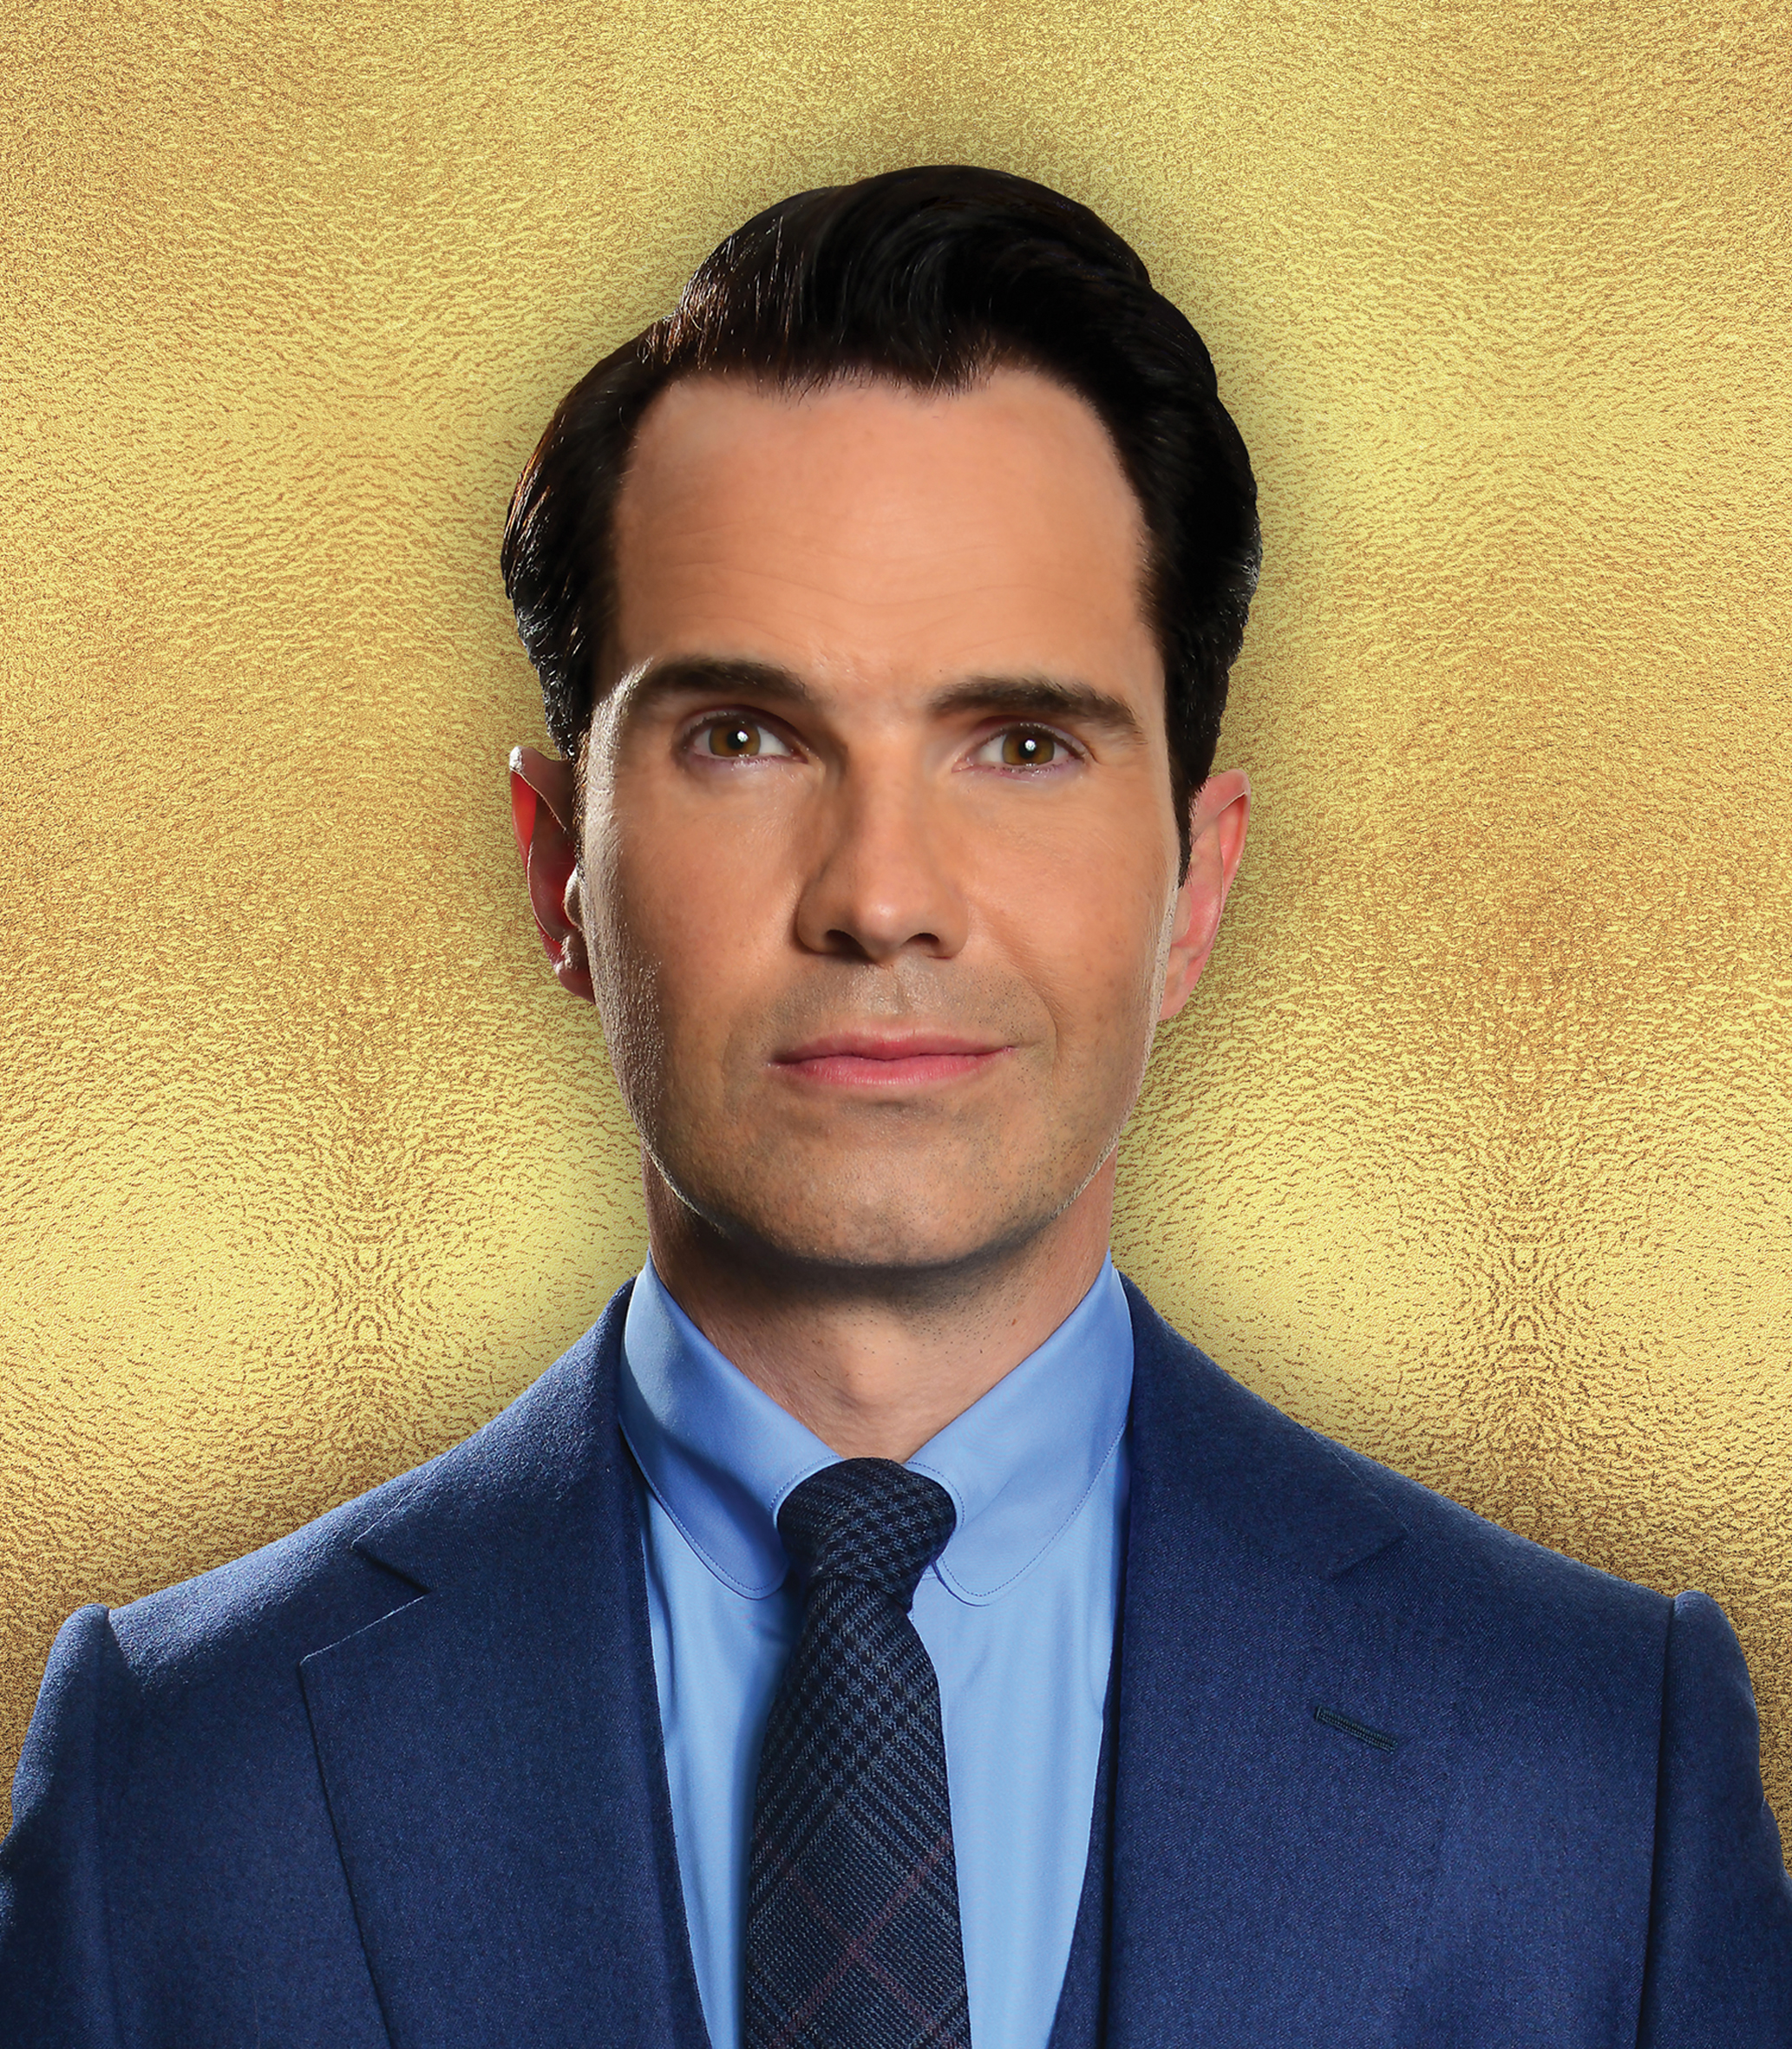 Jimmy Carr - The Best of, Ultimate Gold, Greatest Hits Tour